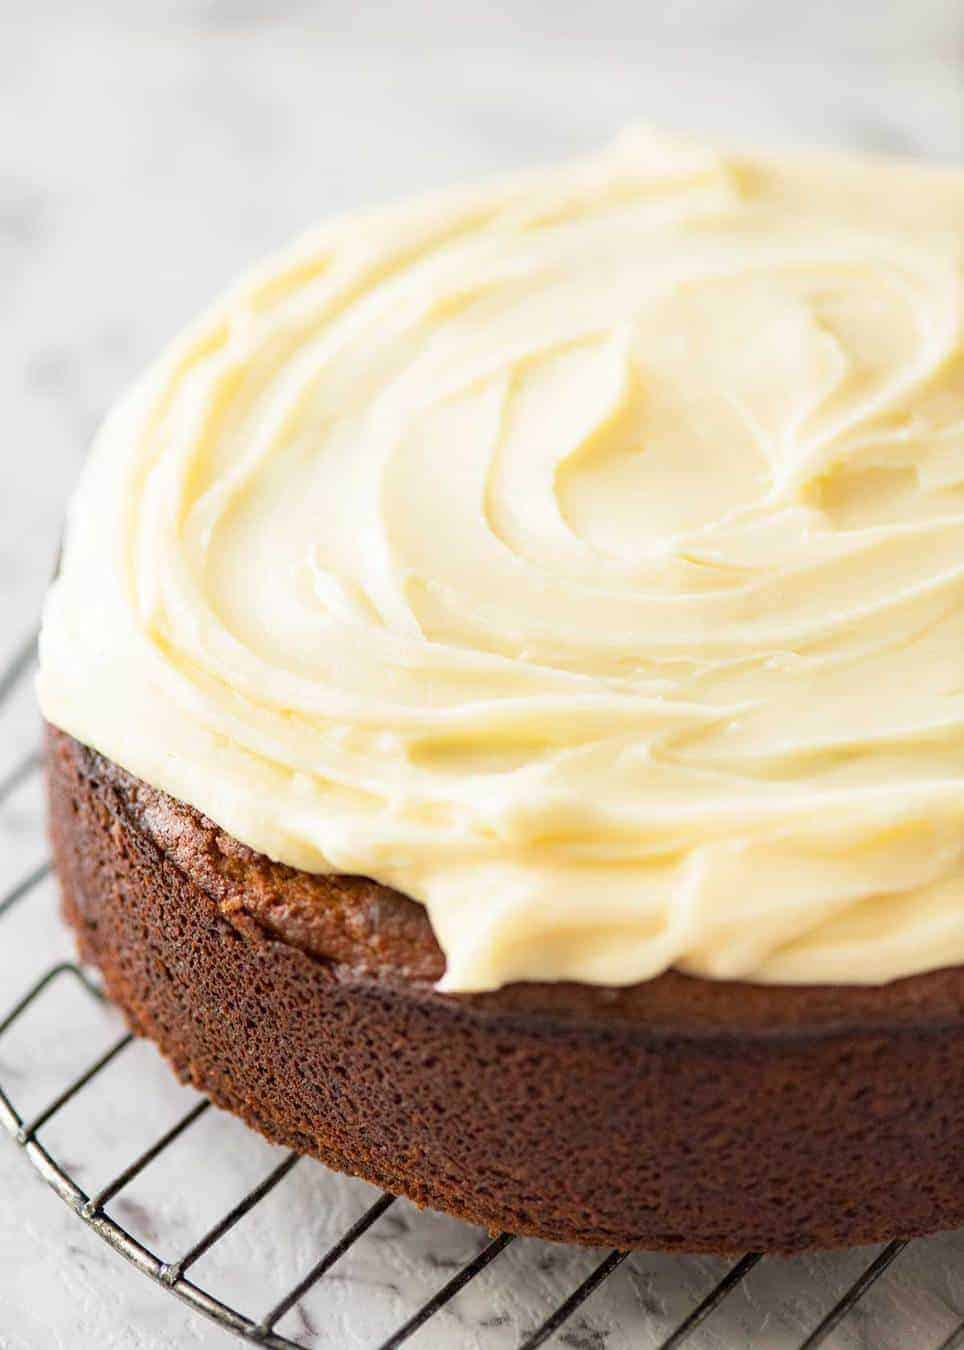 Super quick cream cheese frosting for Lemon Cake (no stand mixer required)